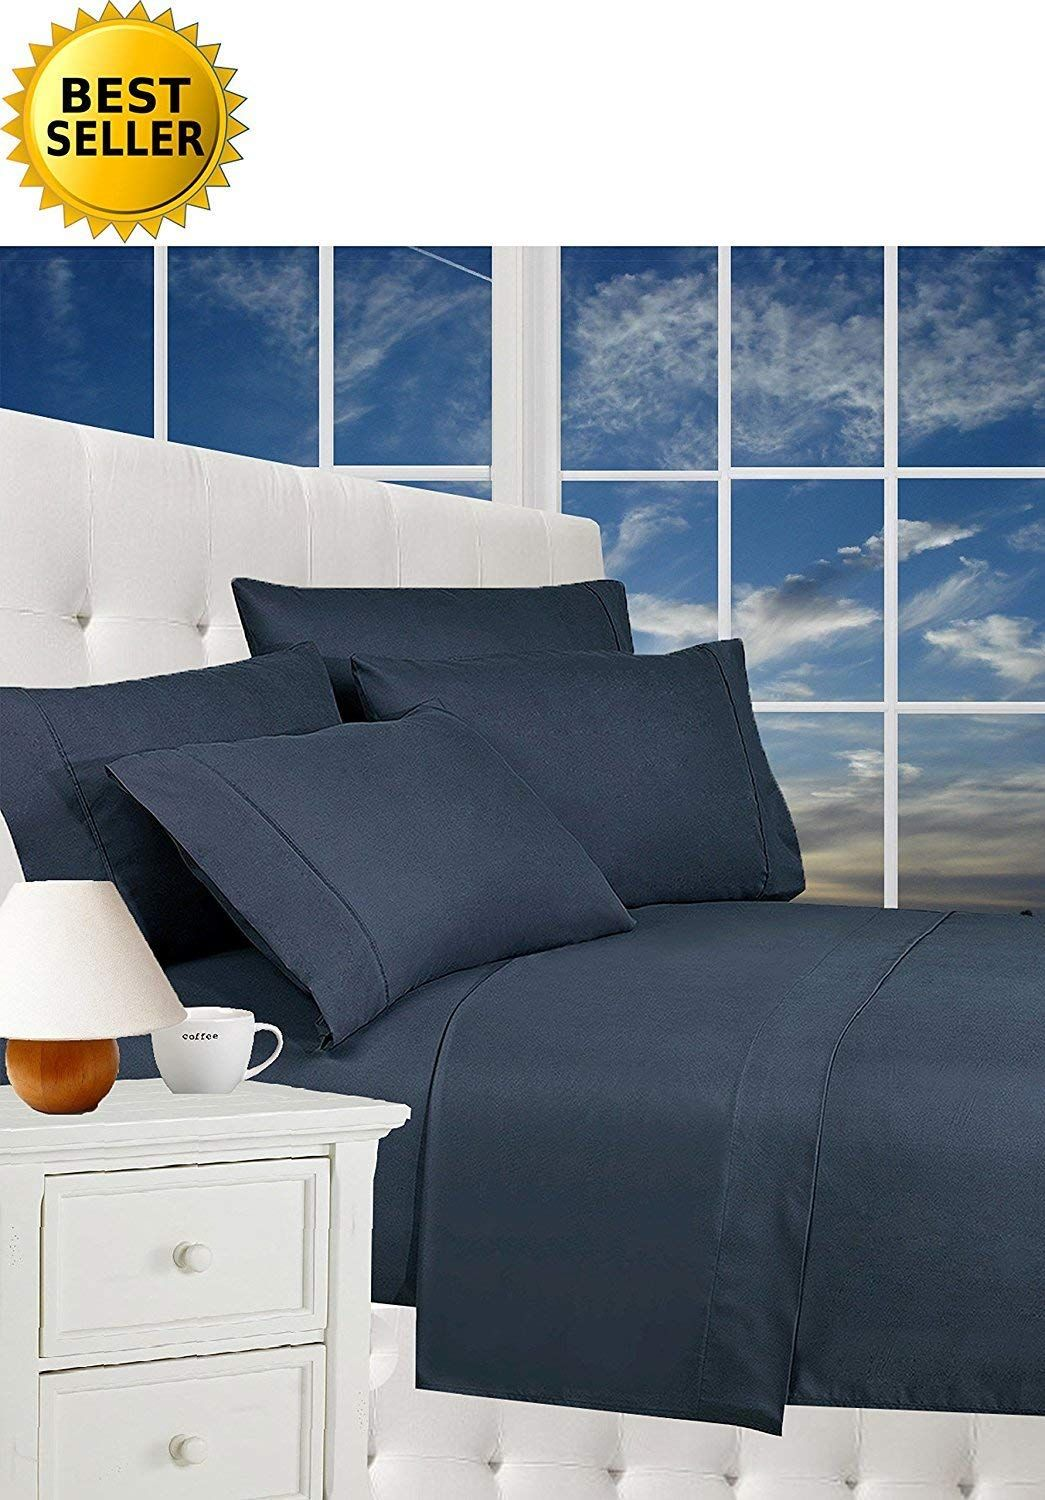 Wrinkle resistant luxury piece bed sheet set thread count